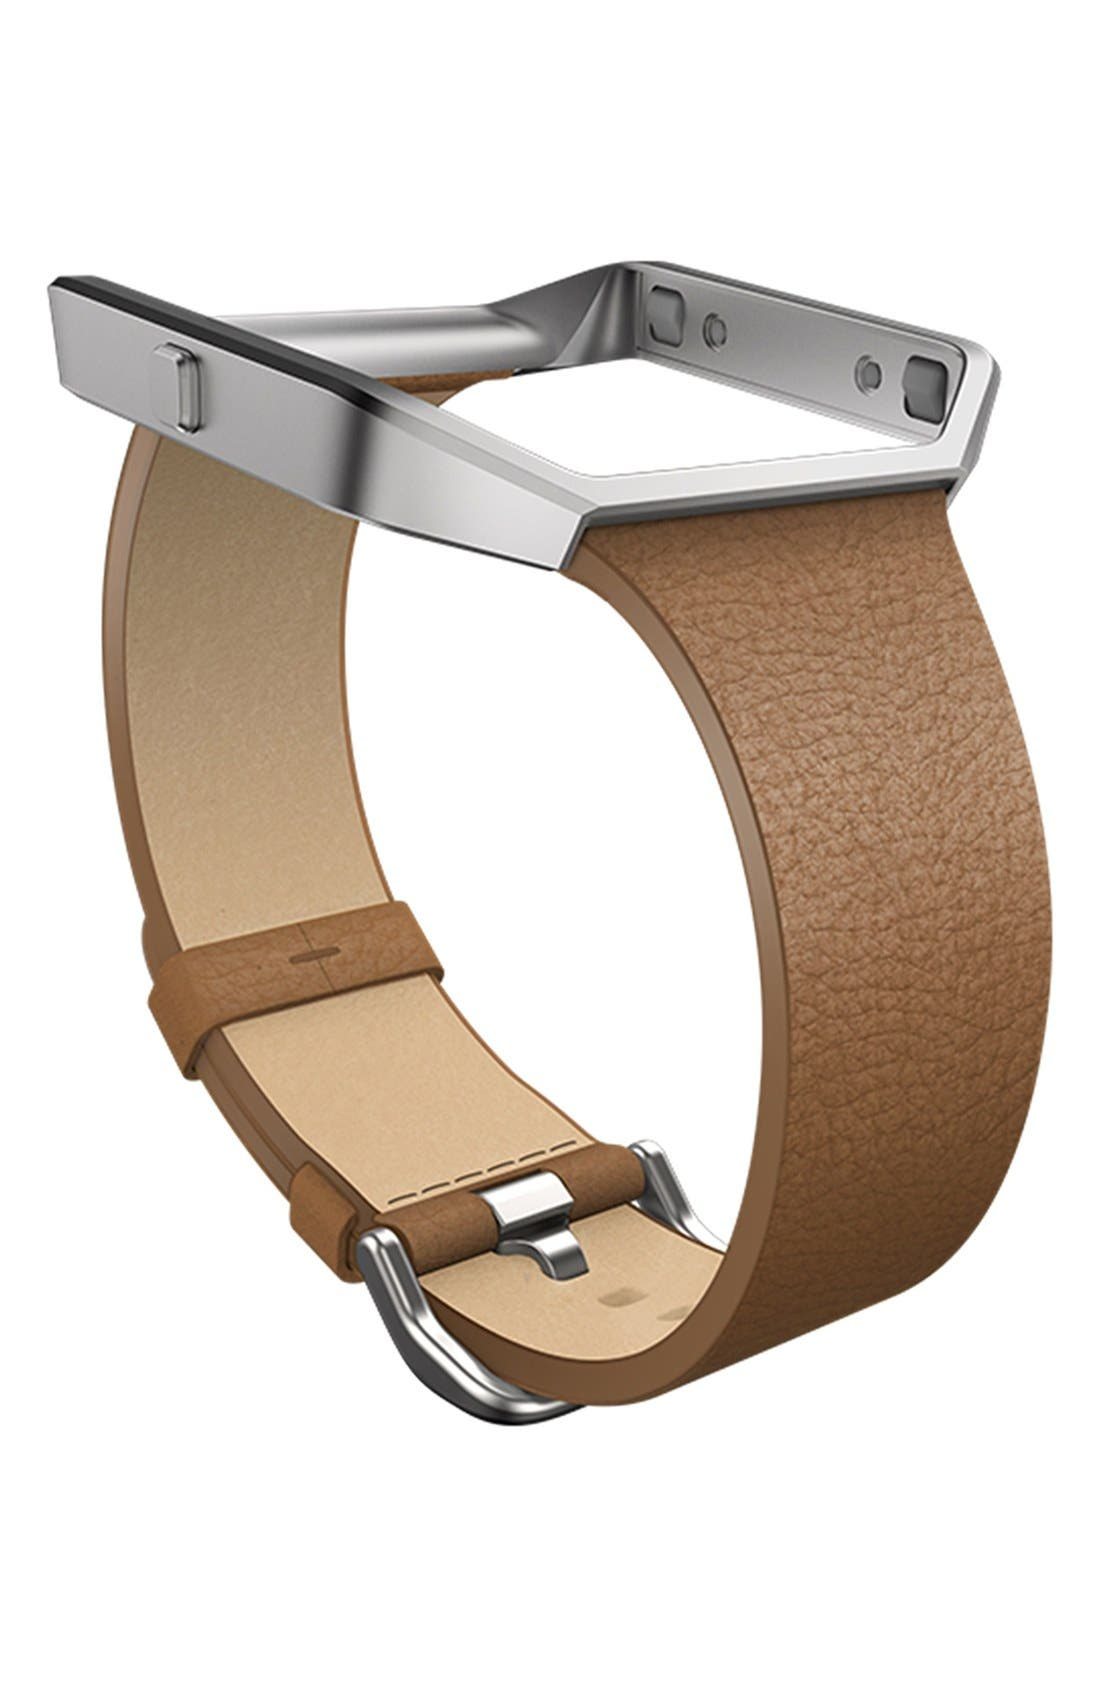 'BLAZE' SLIM LEATHER ACCESSORY BAND & FRAME